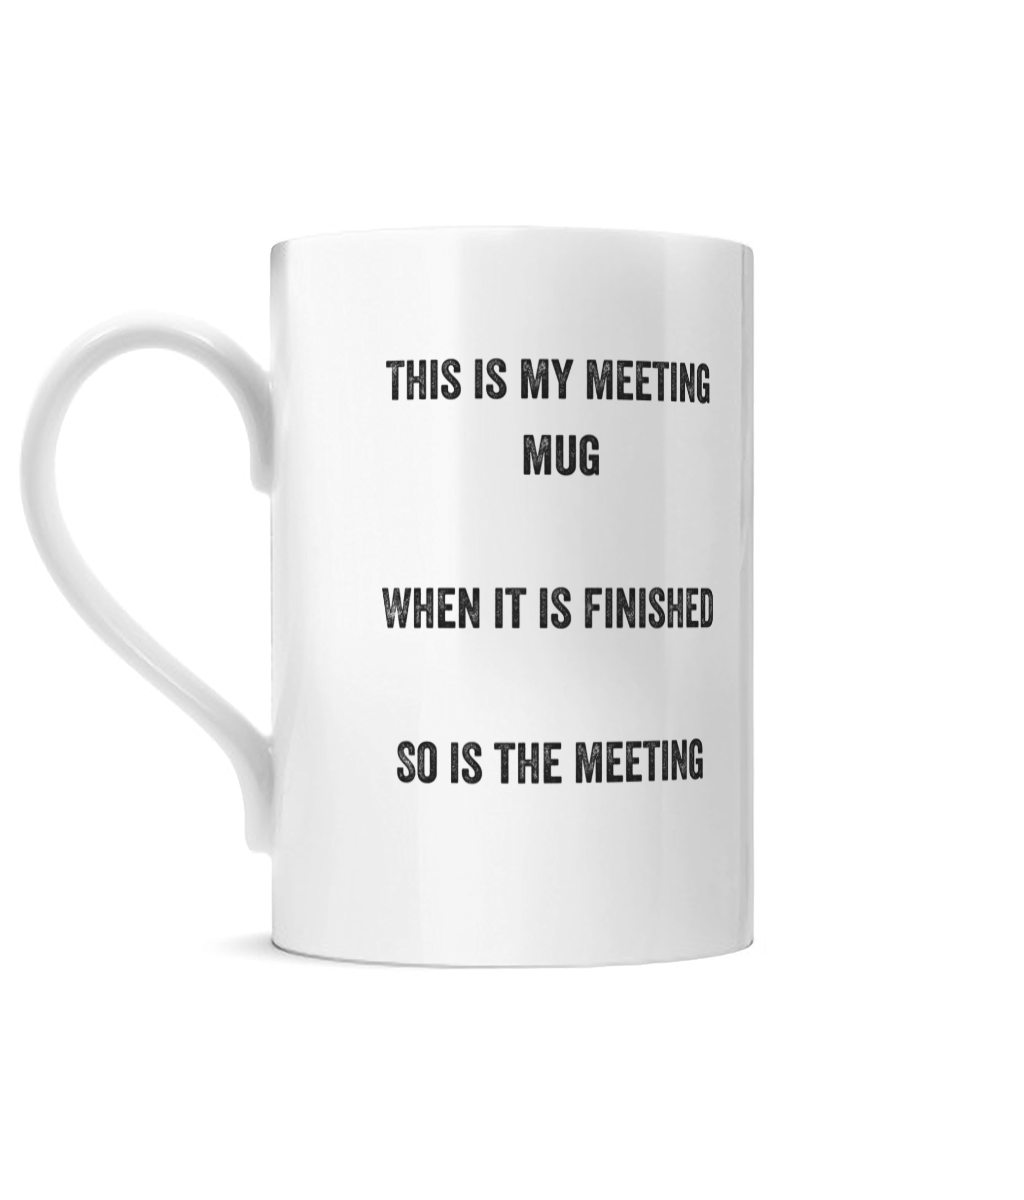 Posh Meeting Mug. A travelling mug which has printed on it. This is my meeting mug, when it is finished so is the meeting